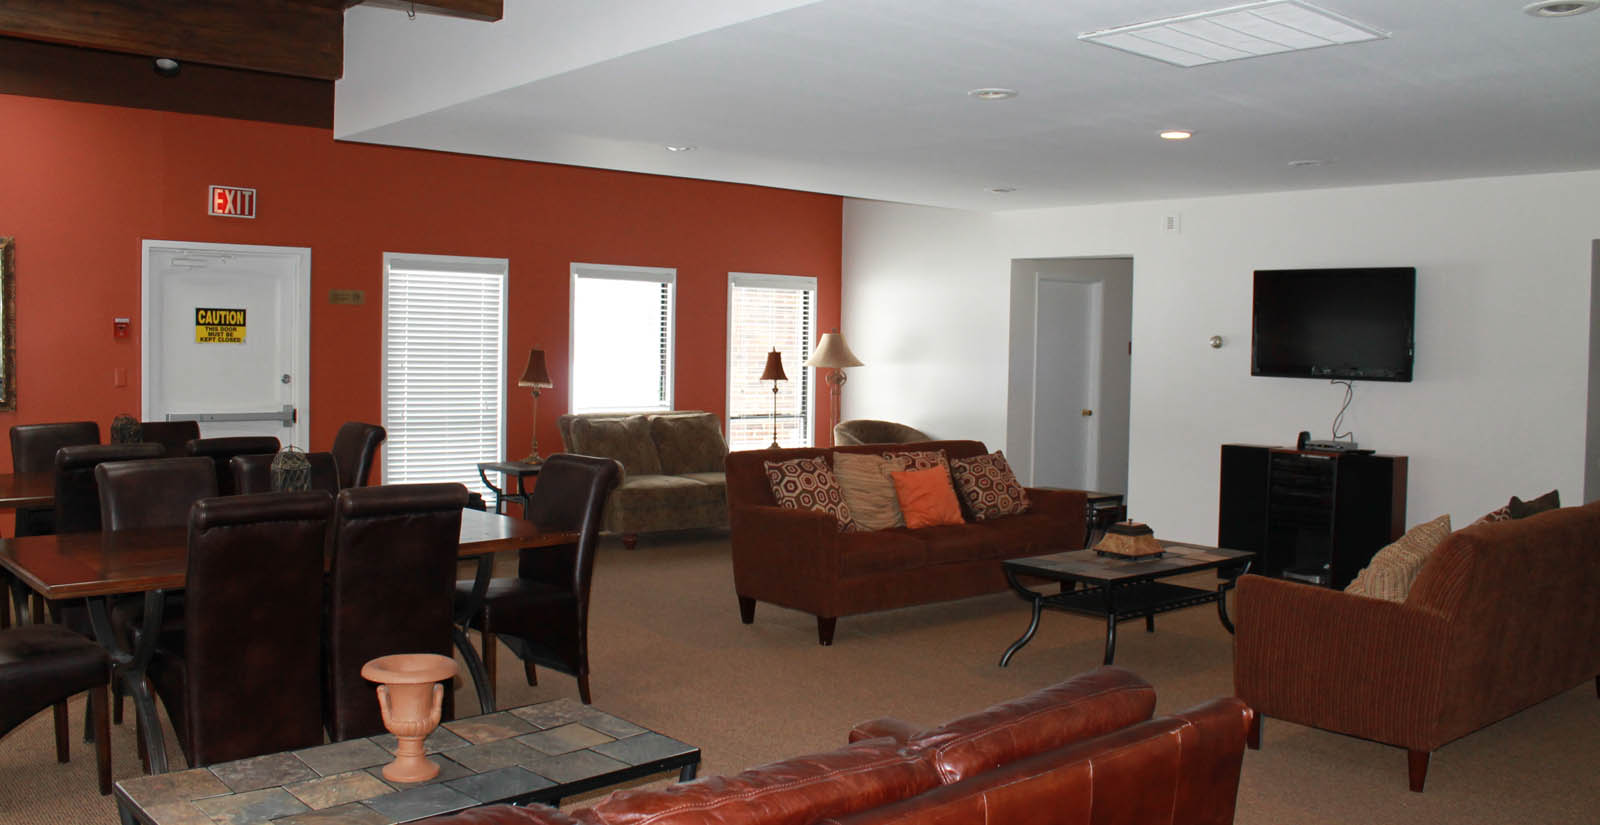 Lounge and clubhouse apartments in wauwatosa